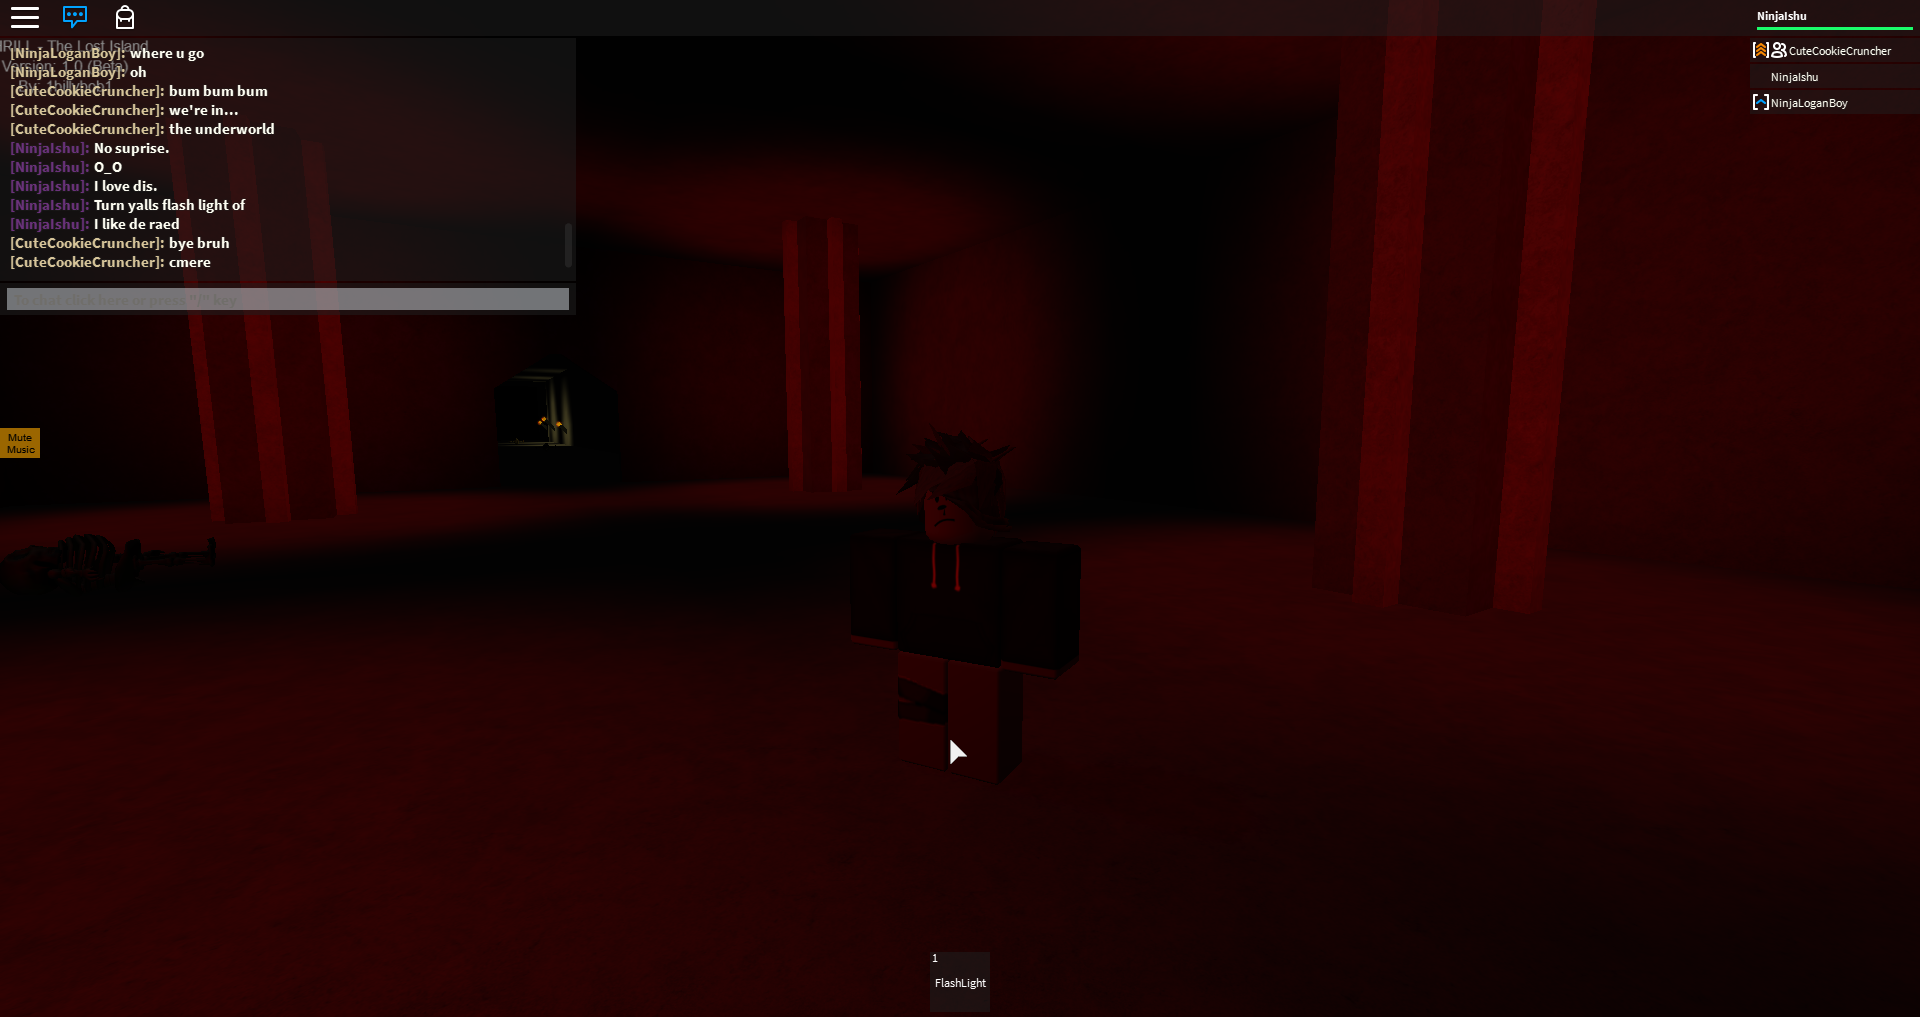 Image by TravelQuest Studio on Roblox Games Roblox